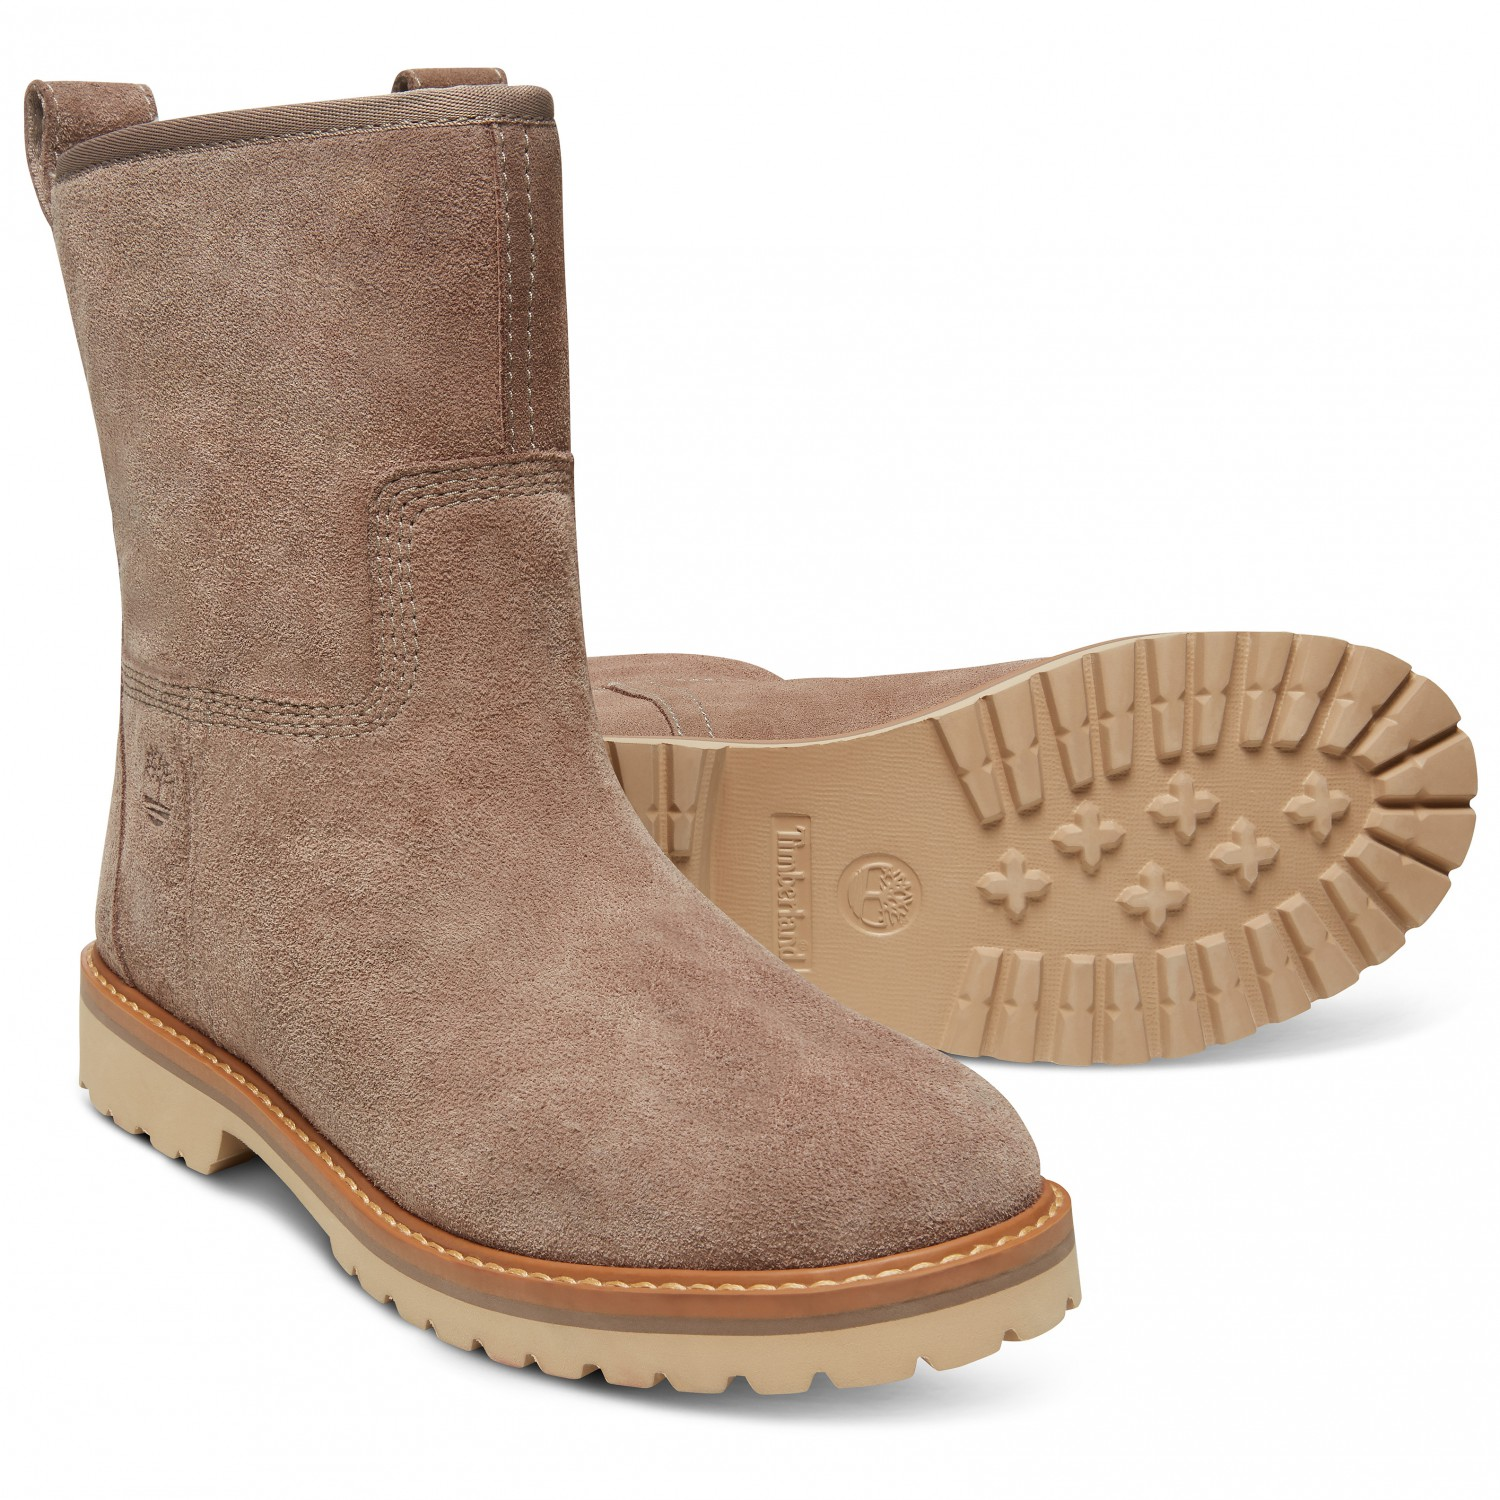 06550060f44 Timberland Chamonix Valley Winter - Winter Boots Women's | Free UK ...